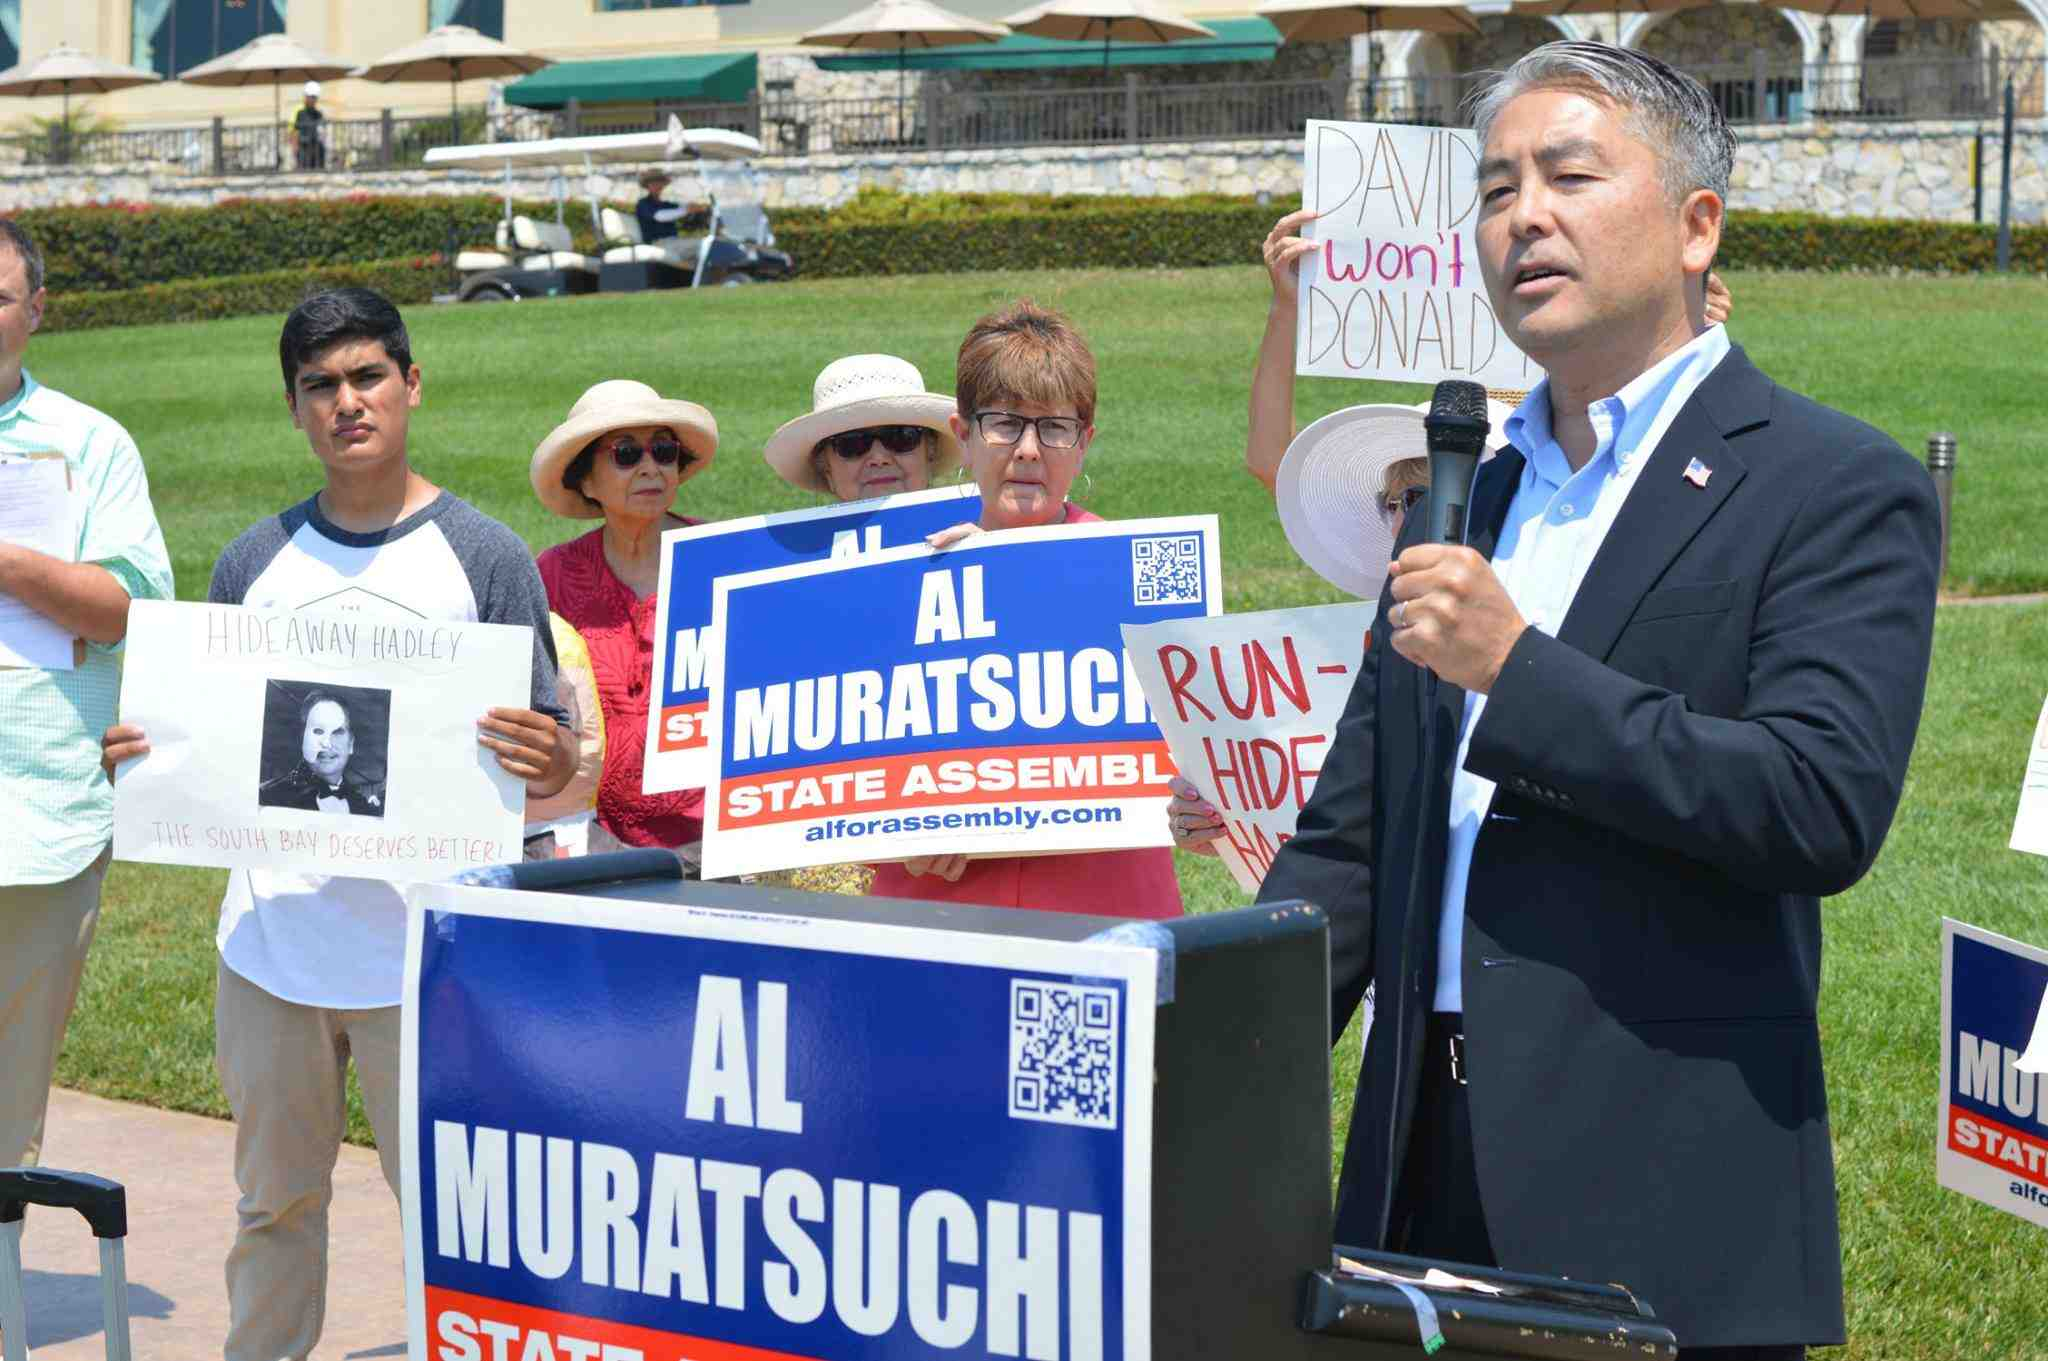 Assembly candidate Al Muratsuchi speaks at a rally in front of a Rancho Palos Verdes golf course owned by Donald Trump.